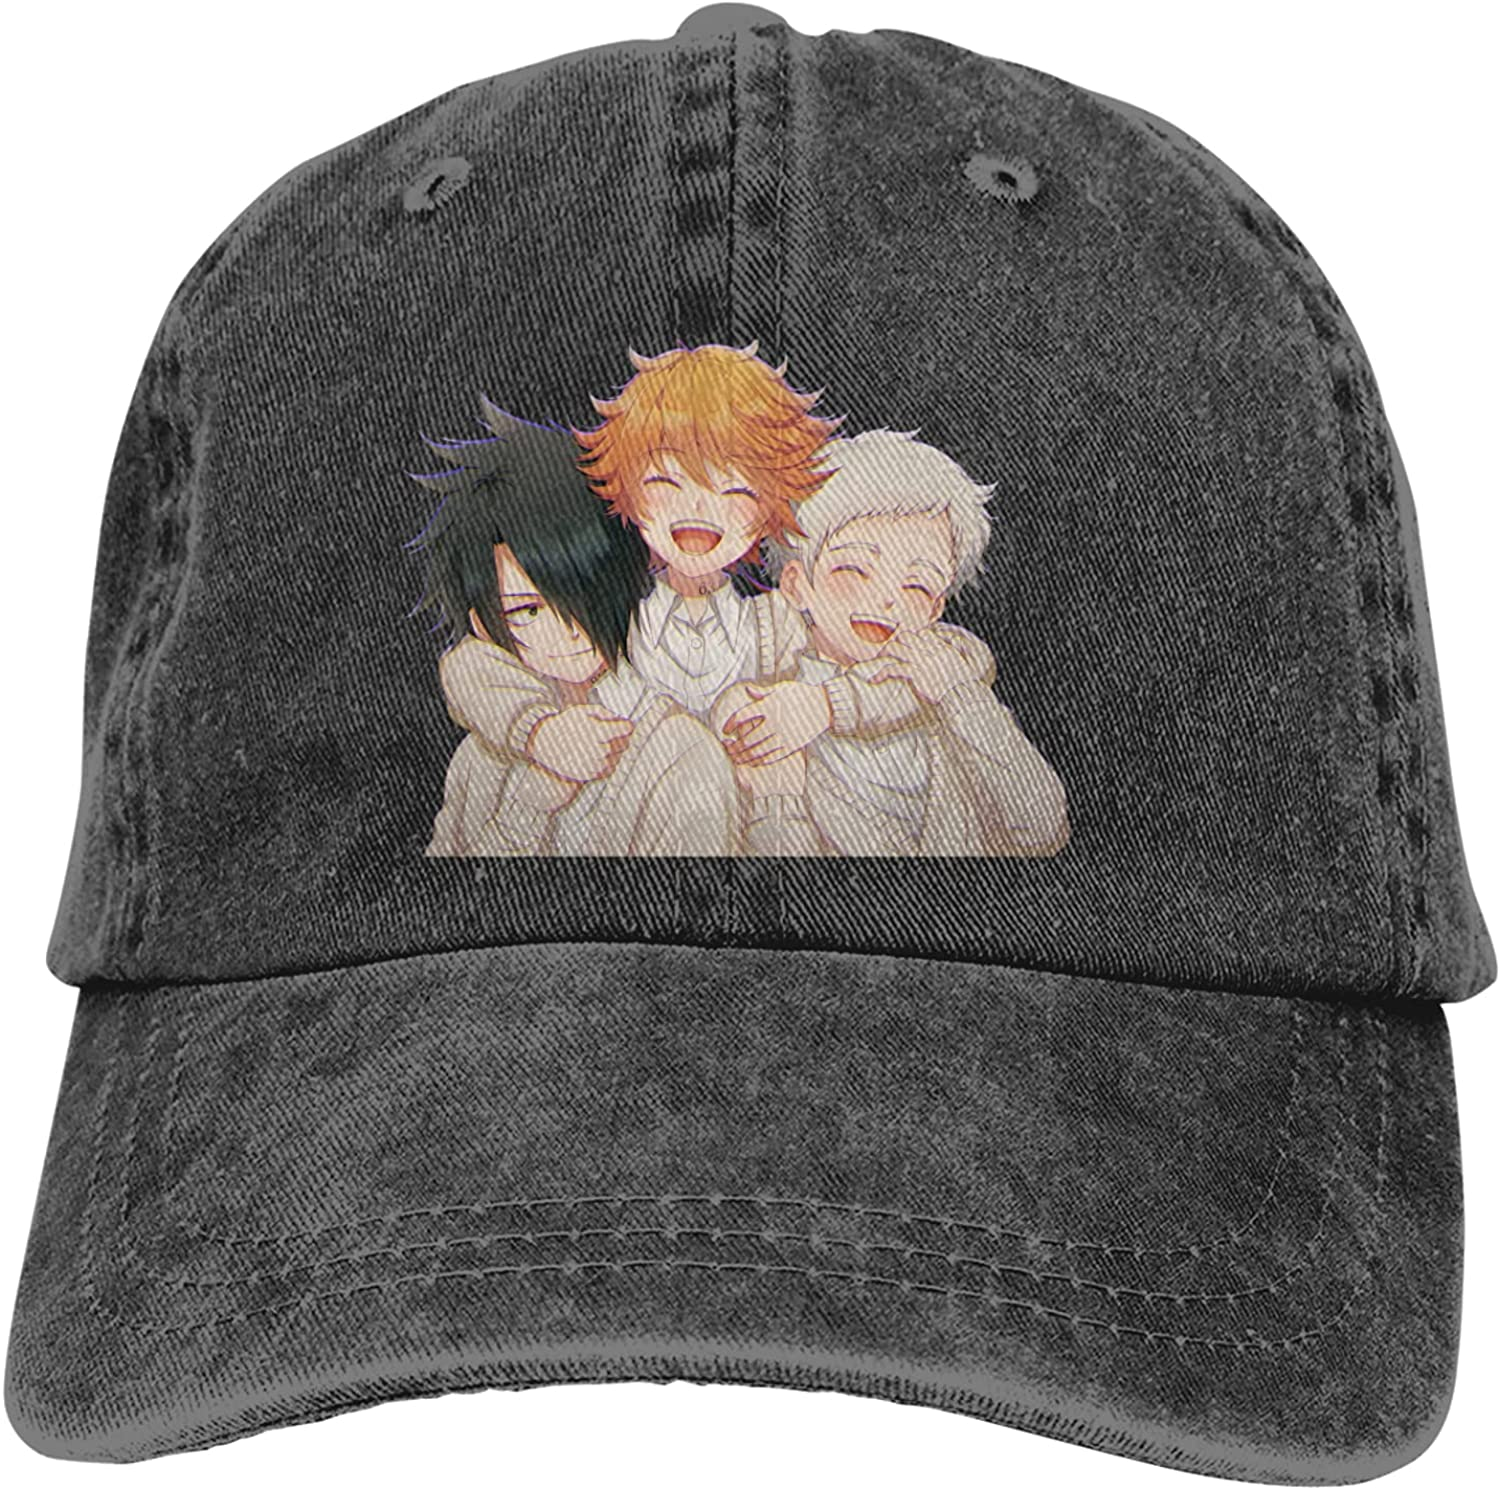 The Promised Neverland Men's and Women's Baseball Caps Cowboy Hats Can Be Adjusted Retro Washing